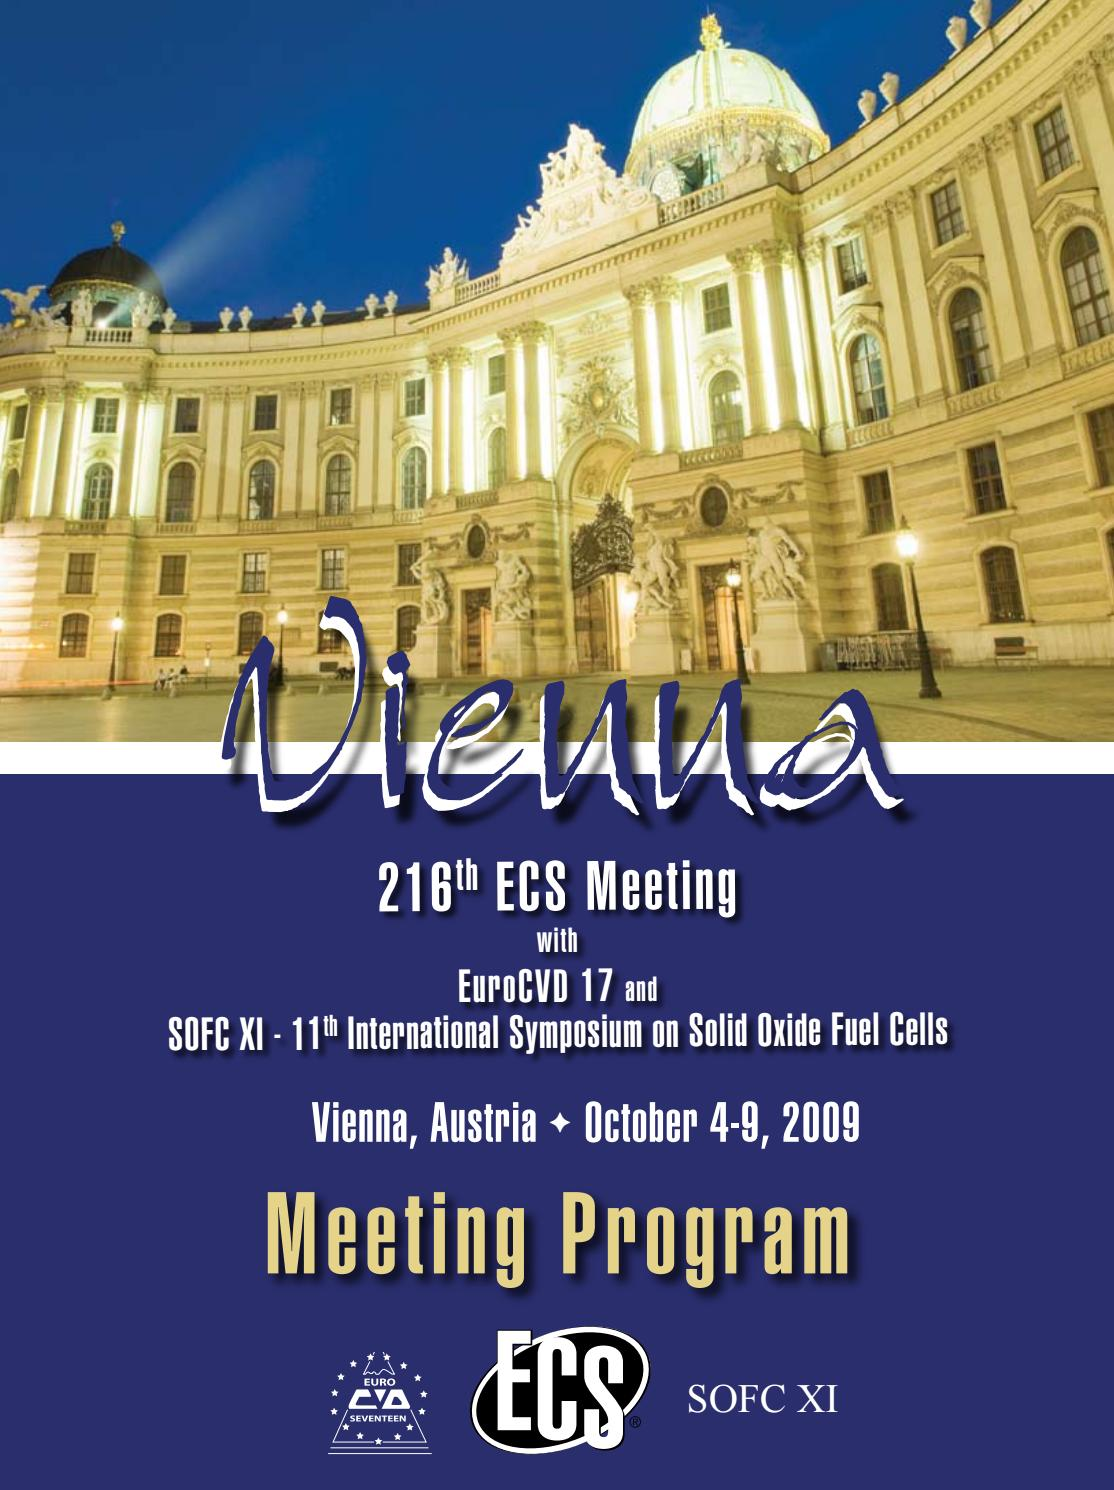 216th Ecs Meeting Program By The Electrochemical Society Dome Lamp Wiring Diagram For 1935 36 Fisher Issuu